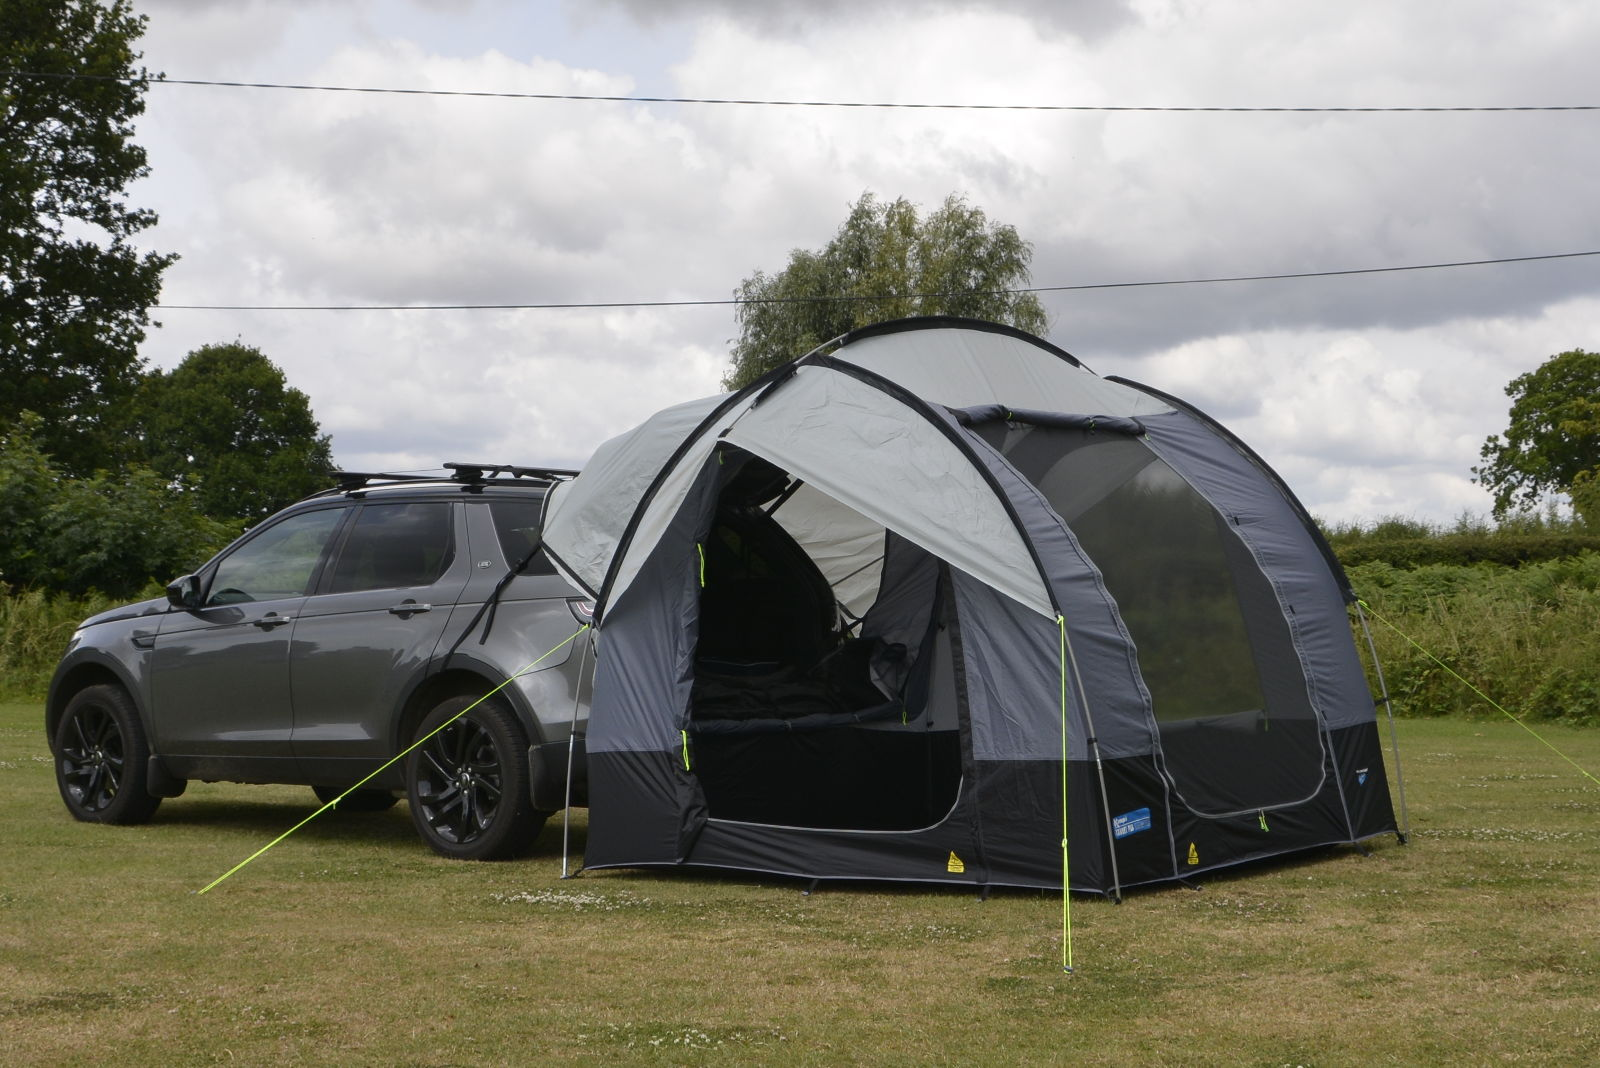 Kampa Travel Pod Tailgater Awning For Pickup And SUV